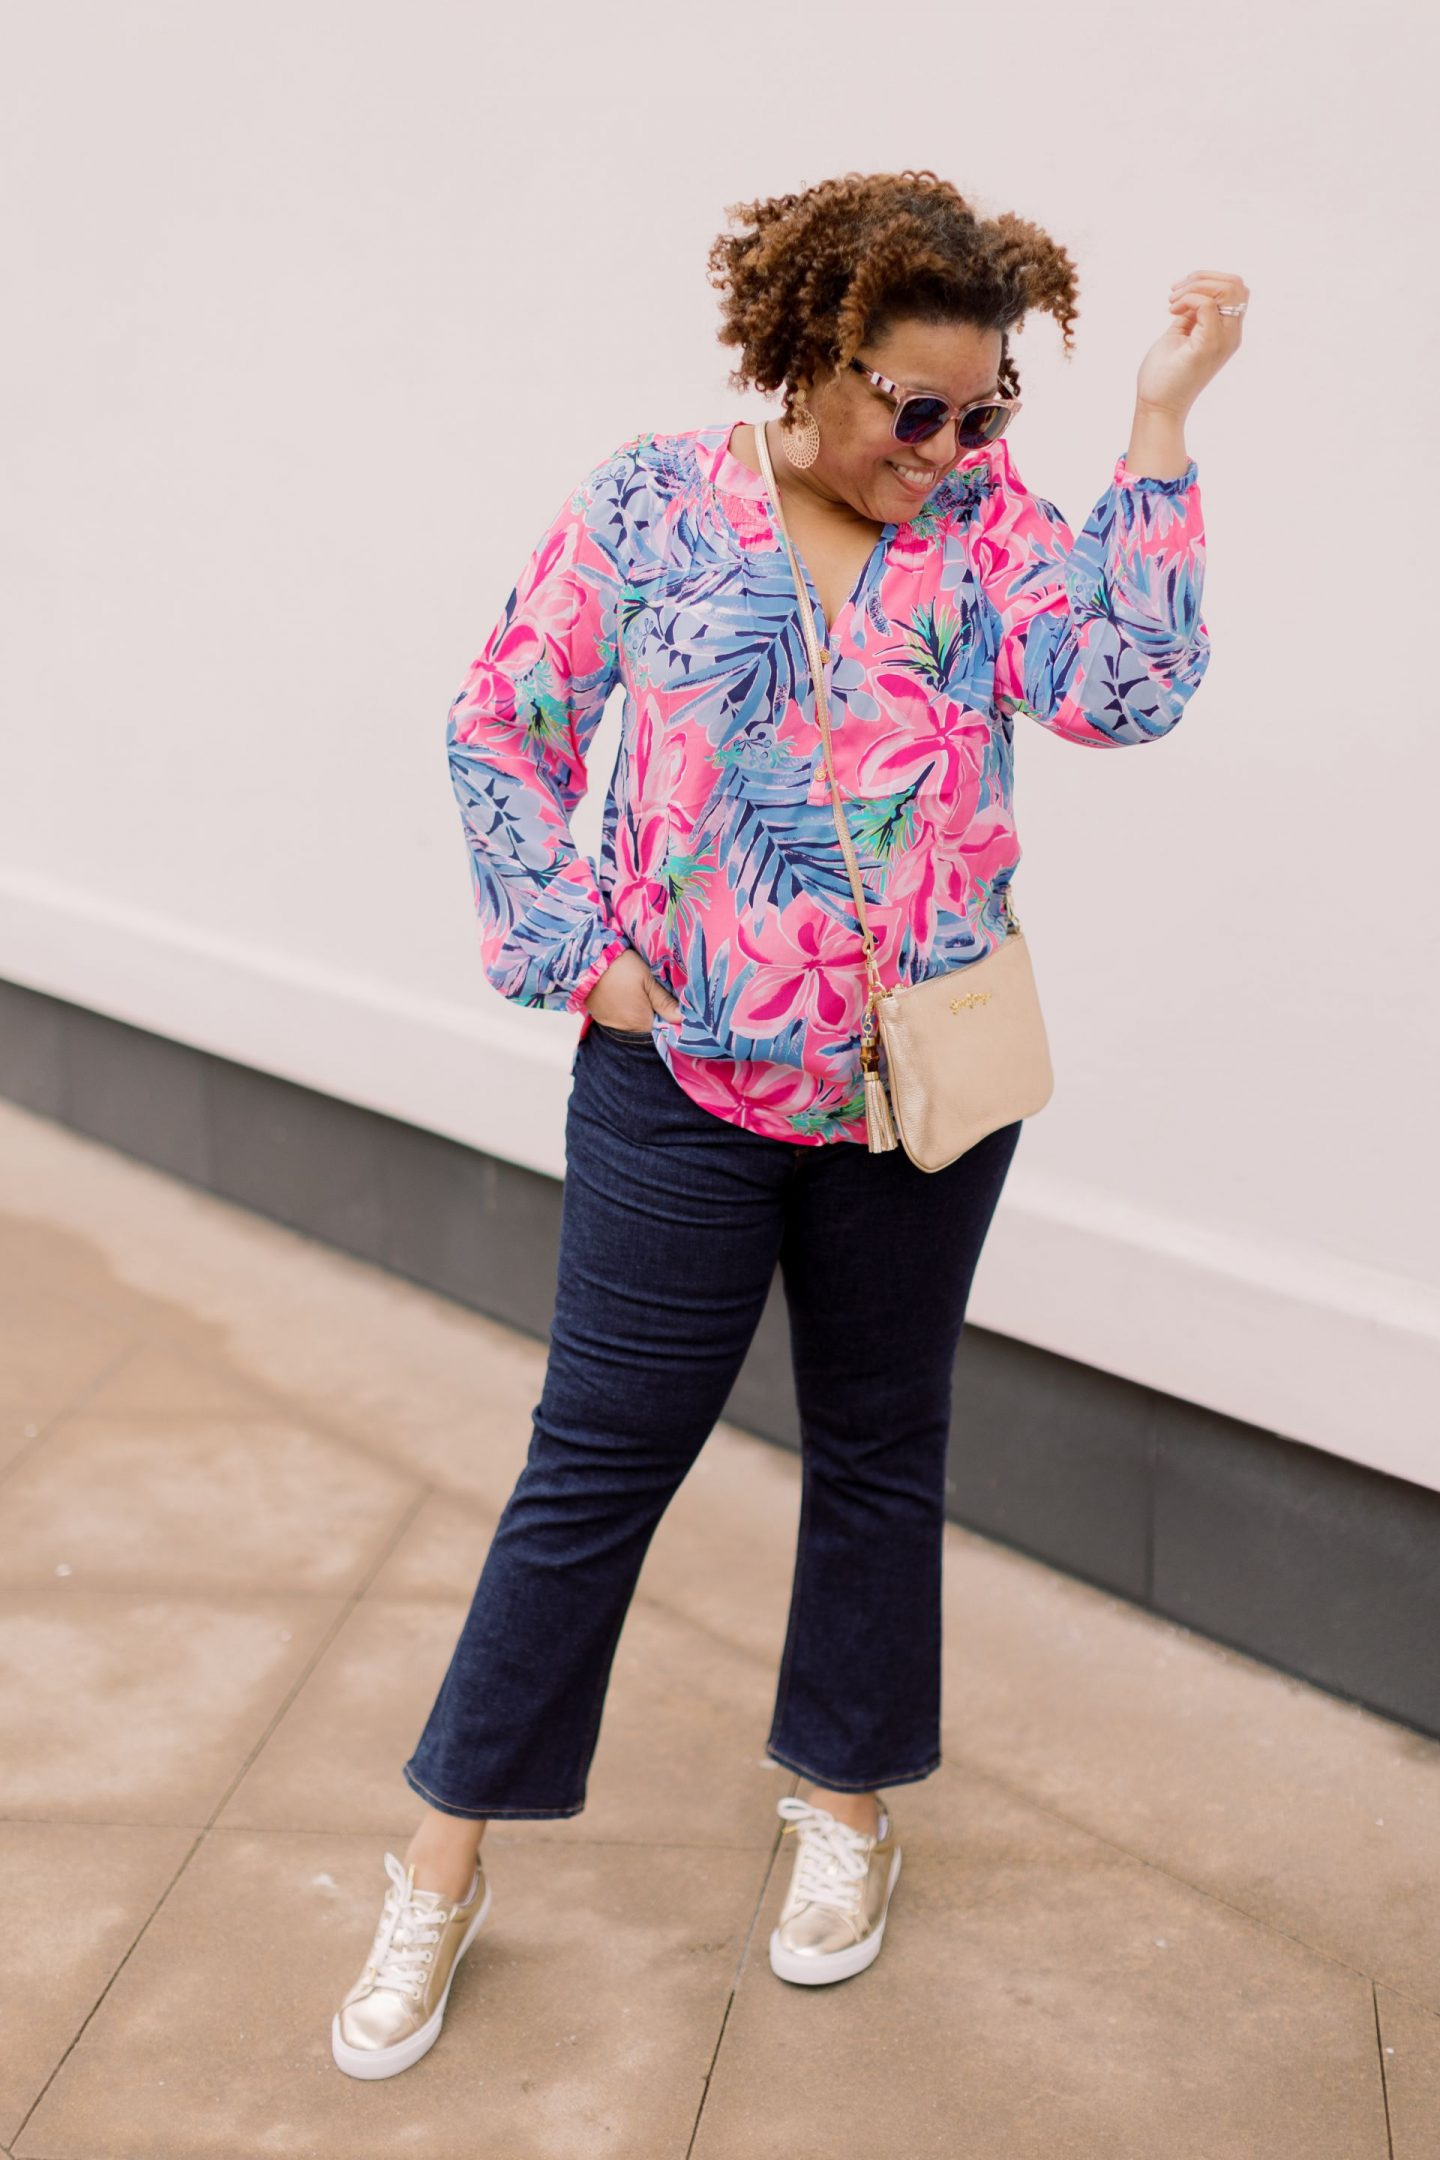 Lilly Pulitzer New Arrivals by popular Kentucky fashion blog, Really Rynetta: image of a woman wearing a Lilly Pulitzer Elsa silk top, flare jeans, and Lilly Pulitzer Hallie lux sneaker.